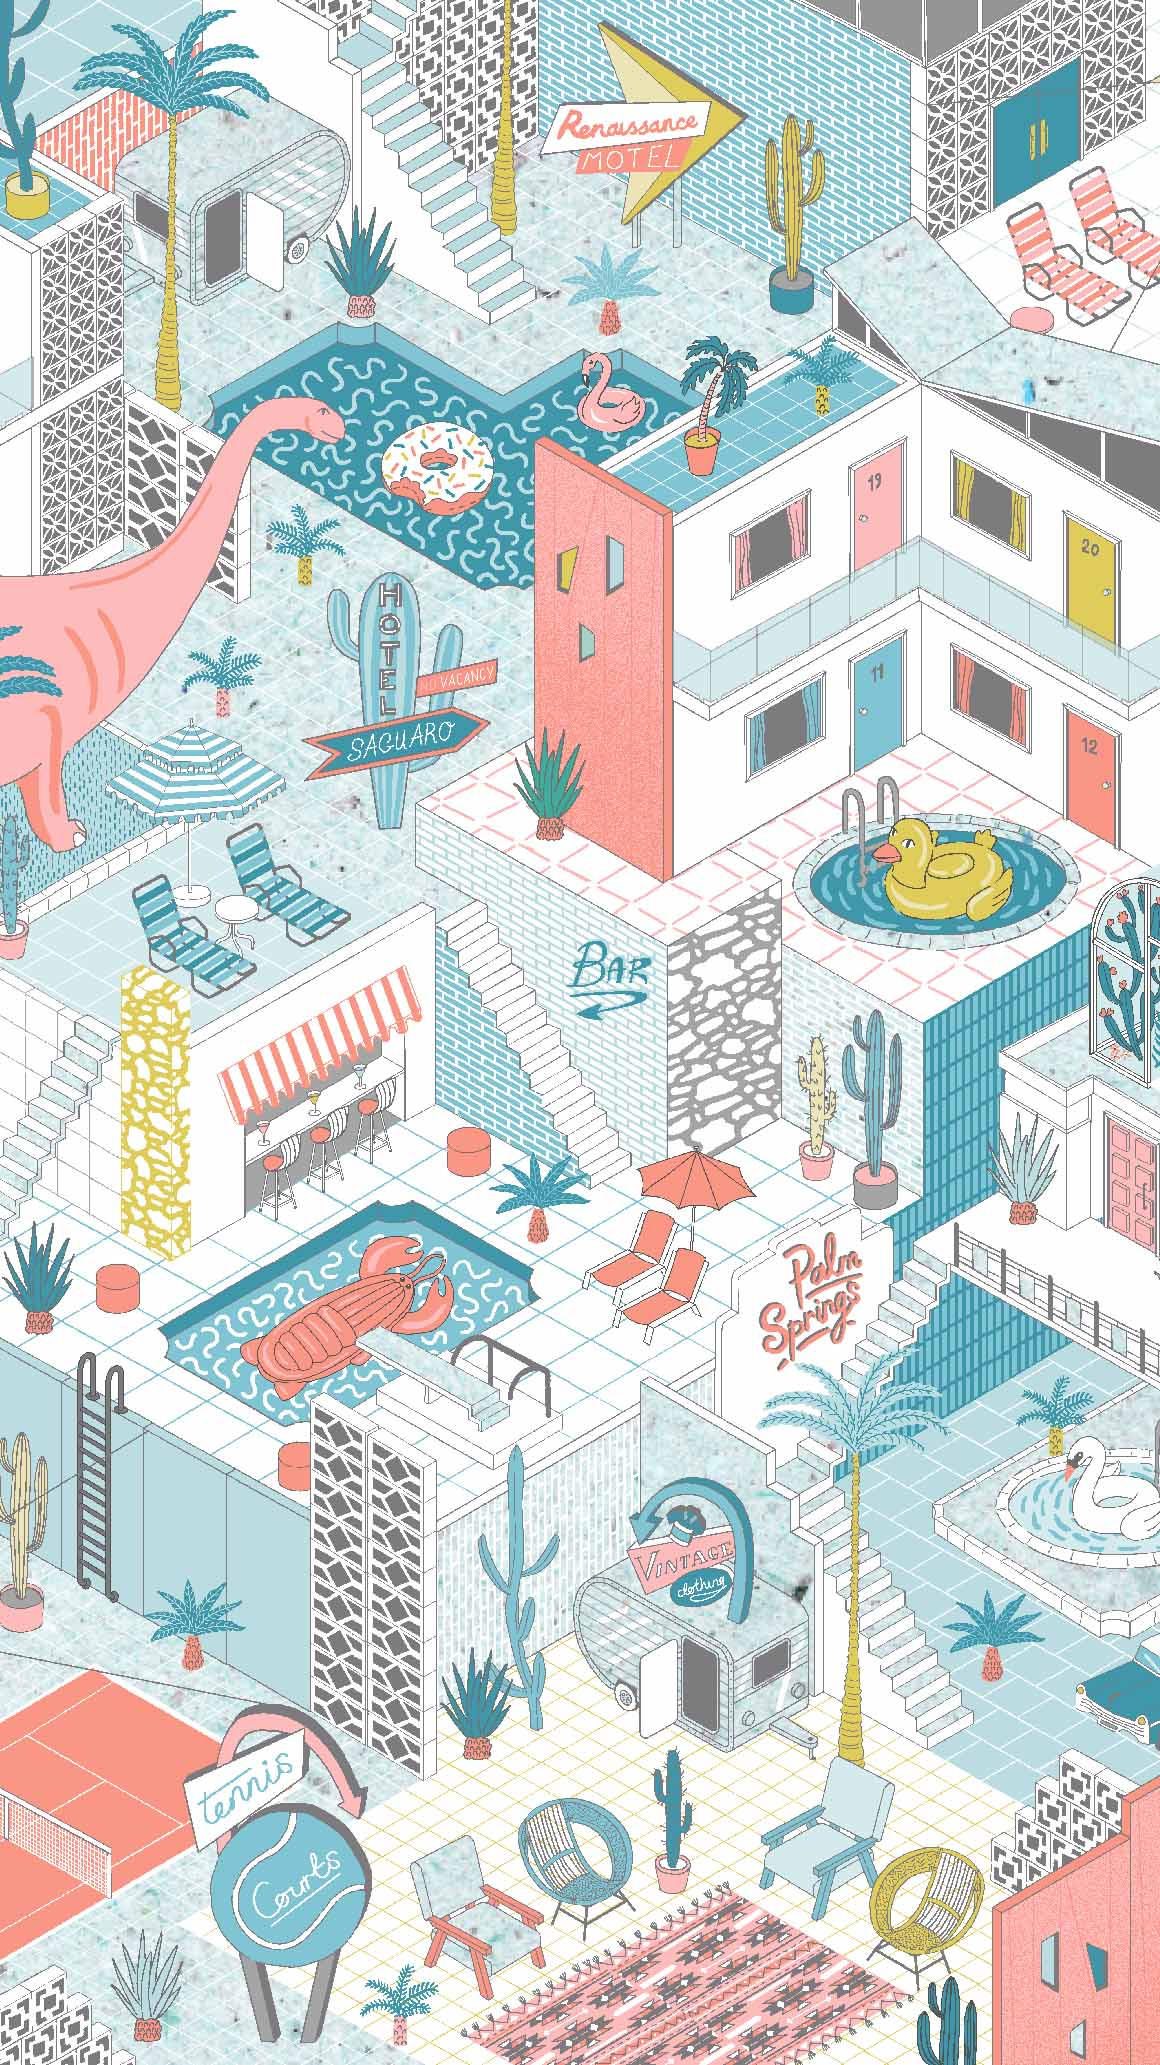 Splash-House-illustrations-by-Jacqueline-Colley2.jpg